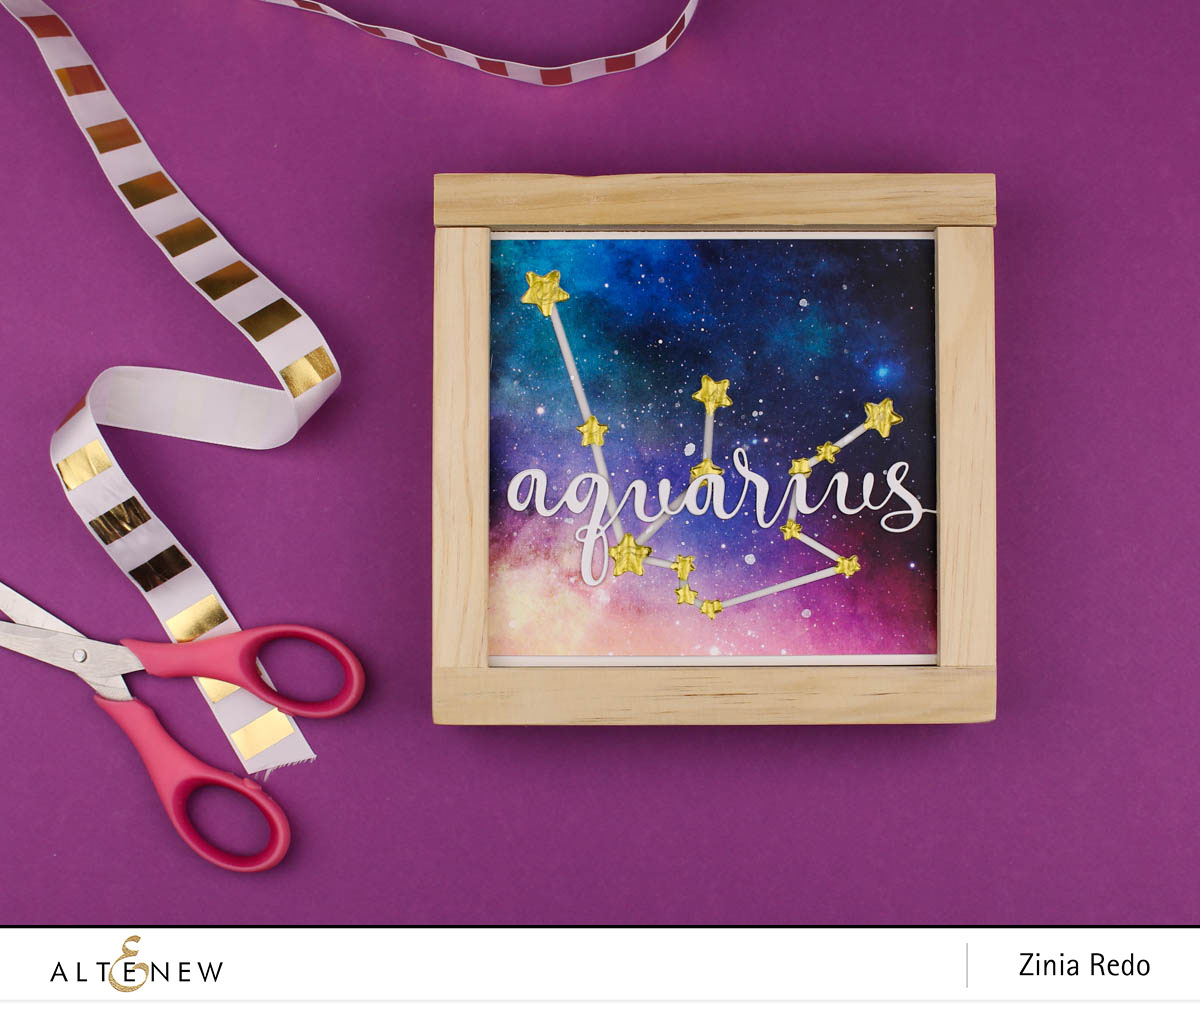 Constellation Deco Frame @ziniaredo @altenewllc #ziniaredo #altenew #zodiacconstellation #galaxy #celestial #decoframe